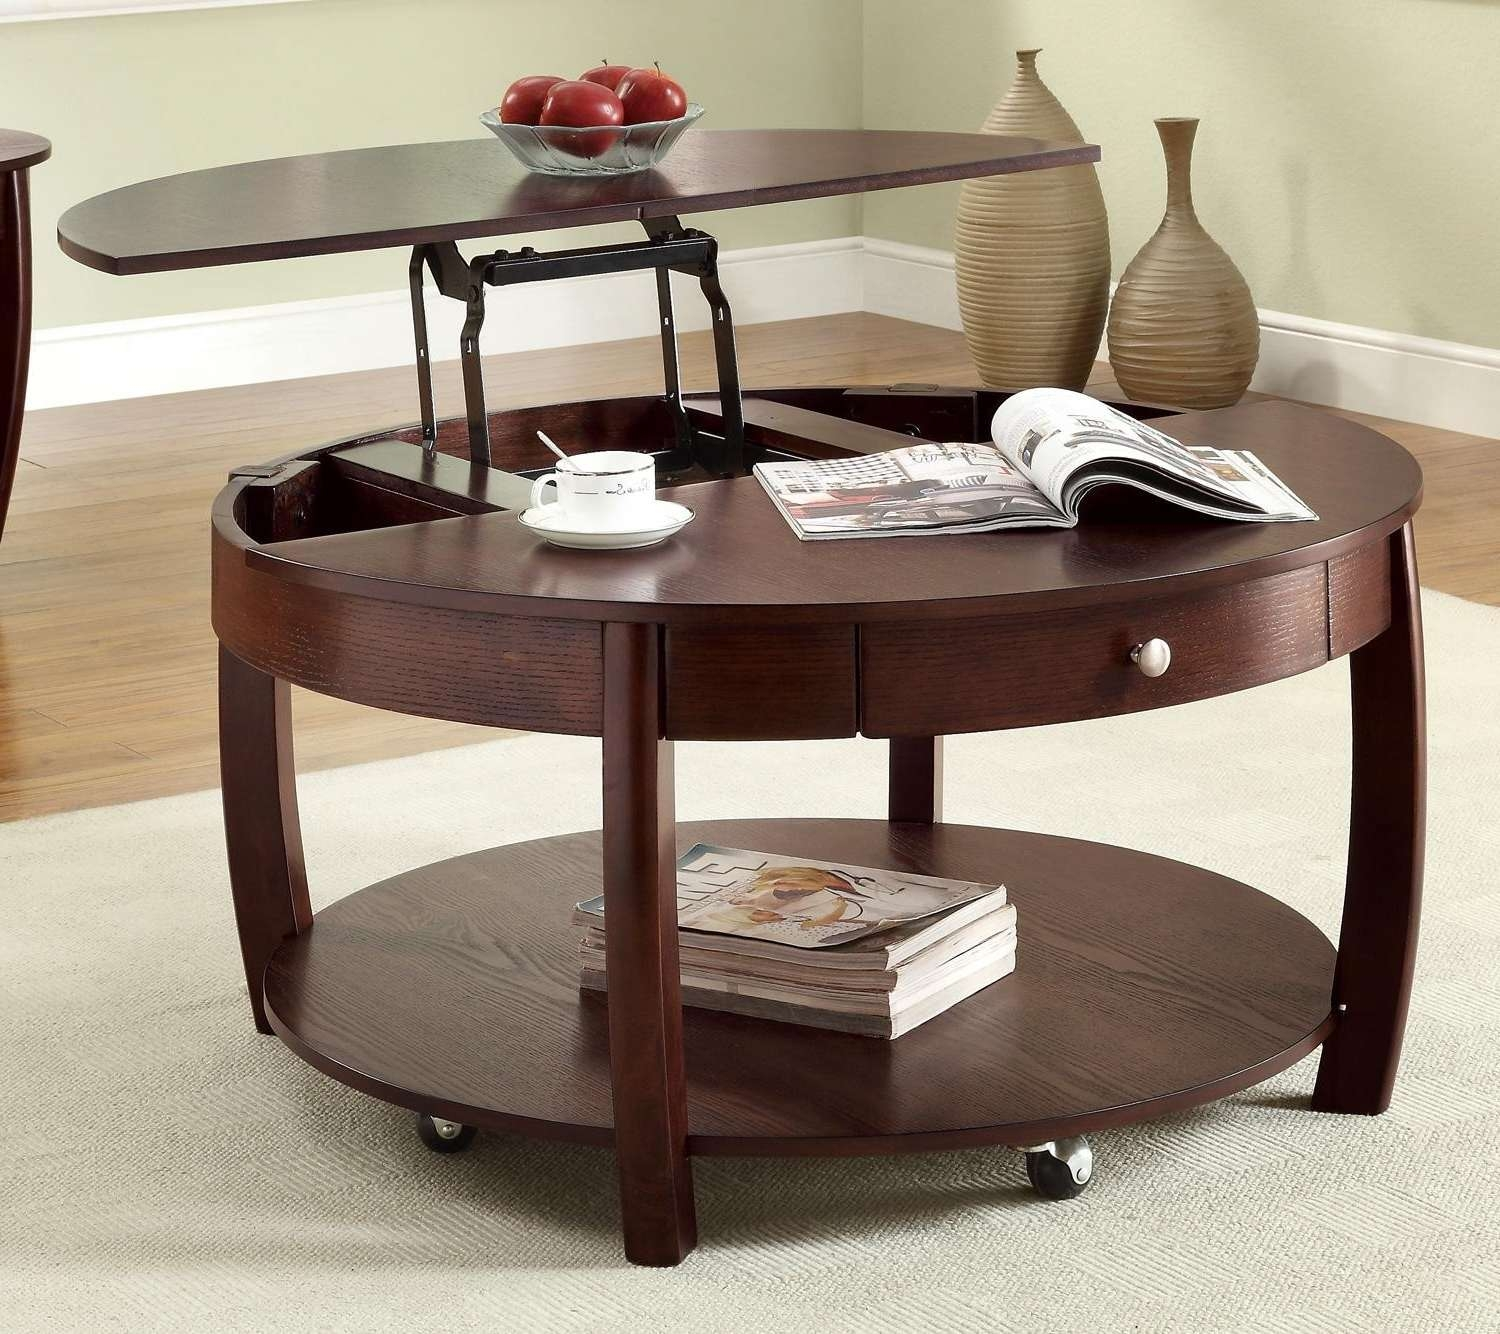 Most Recent Swing Up Coffee Tables In Coffee Table Lift Top Coffee Table Ikea Lift Off Coffee Table Pop (View 9 of 20)